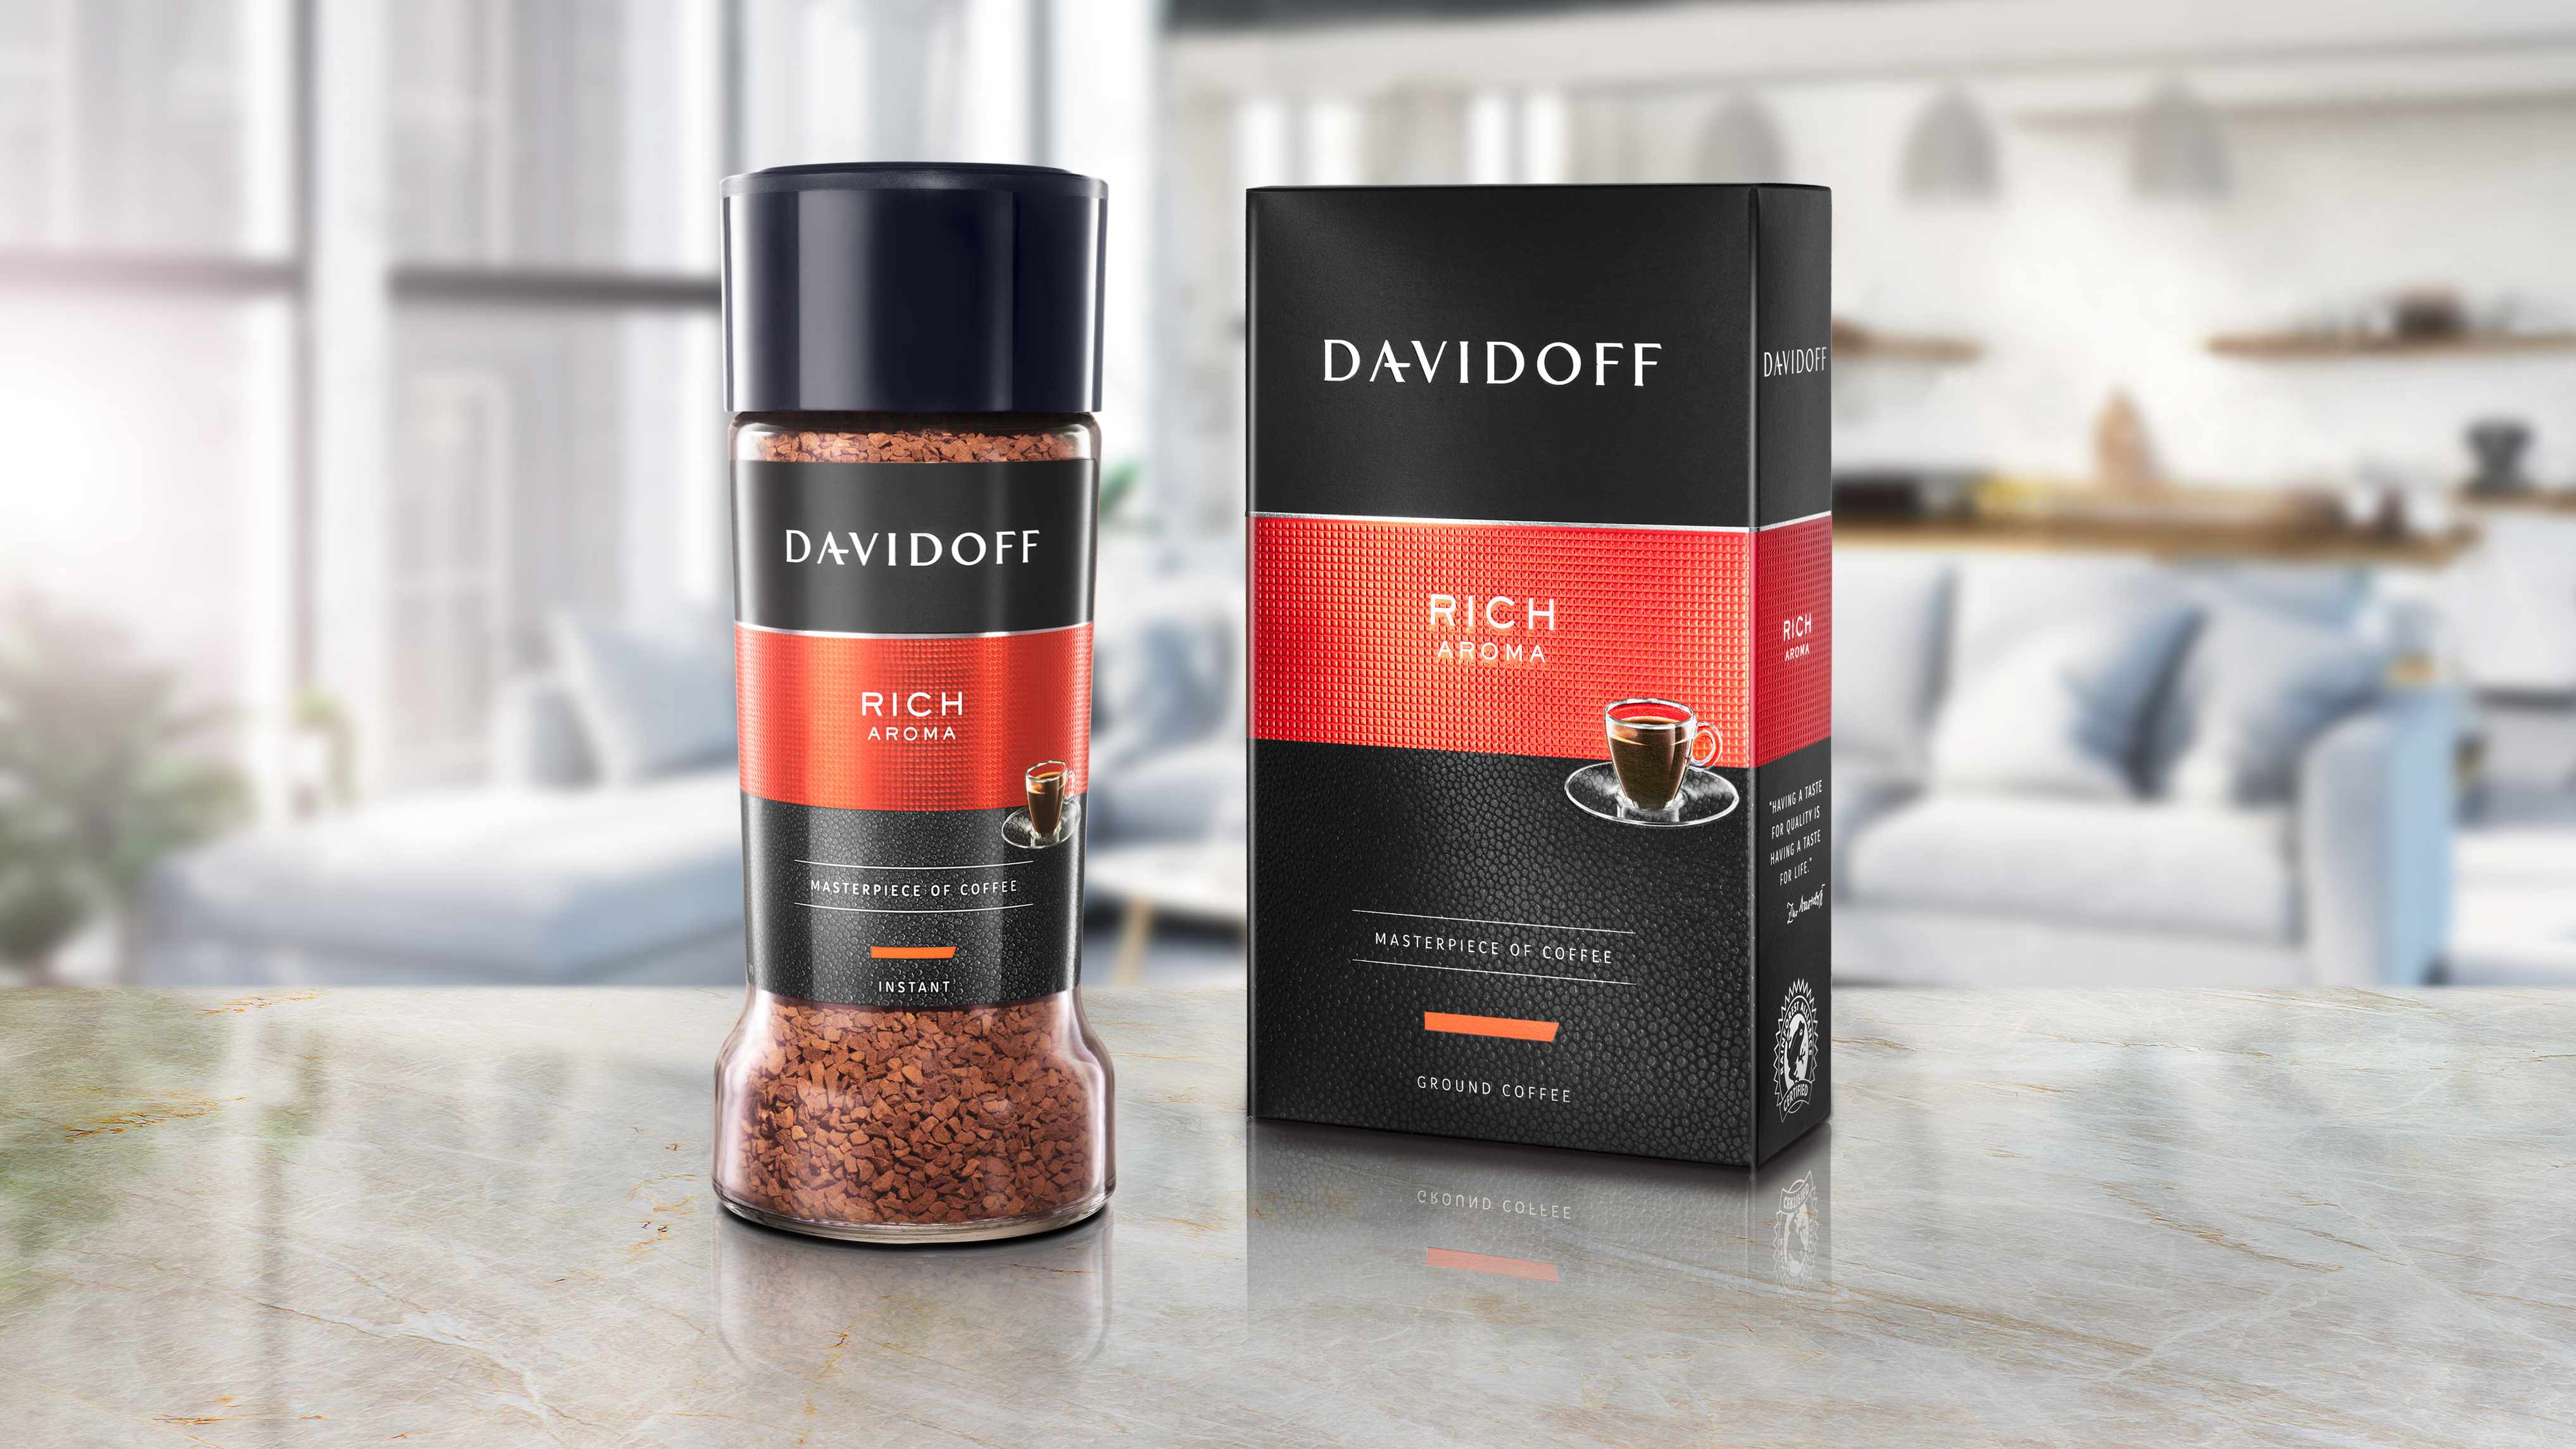 The Coffee Products That Will Change Your Whole Day The Coffee Products That Will Change Your Whole Day new foto